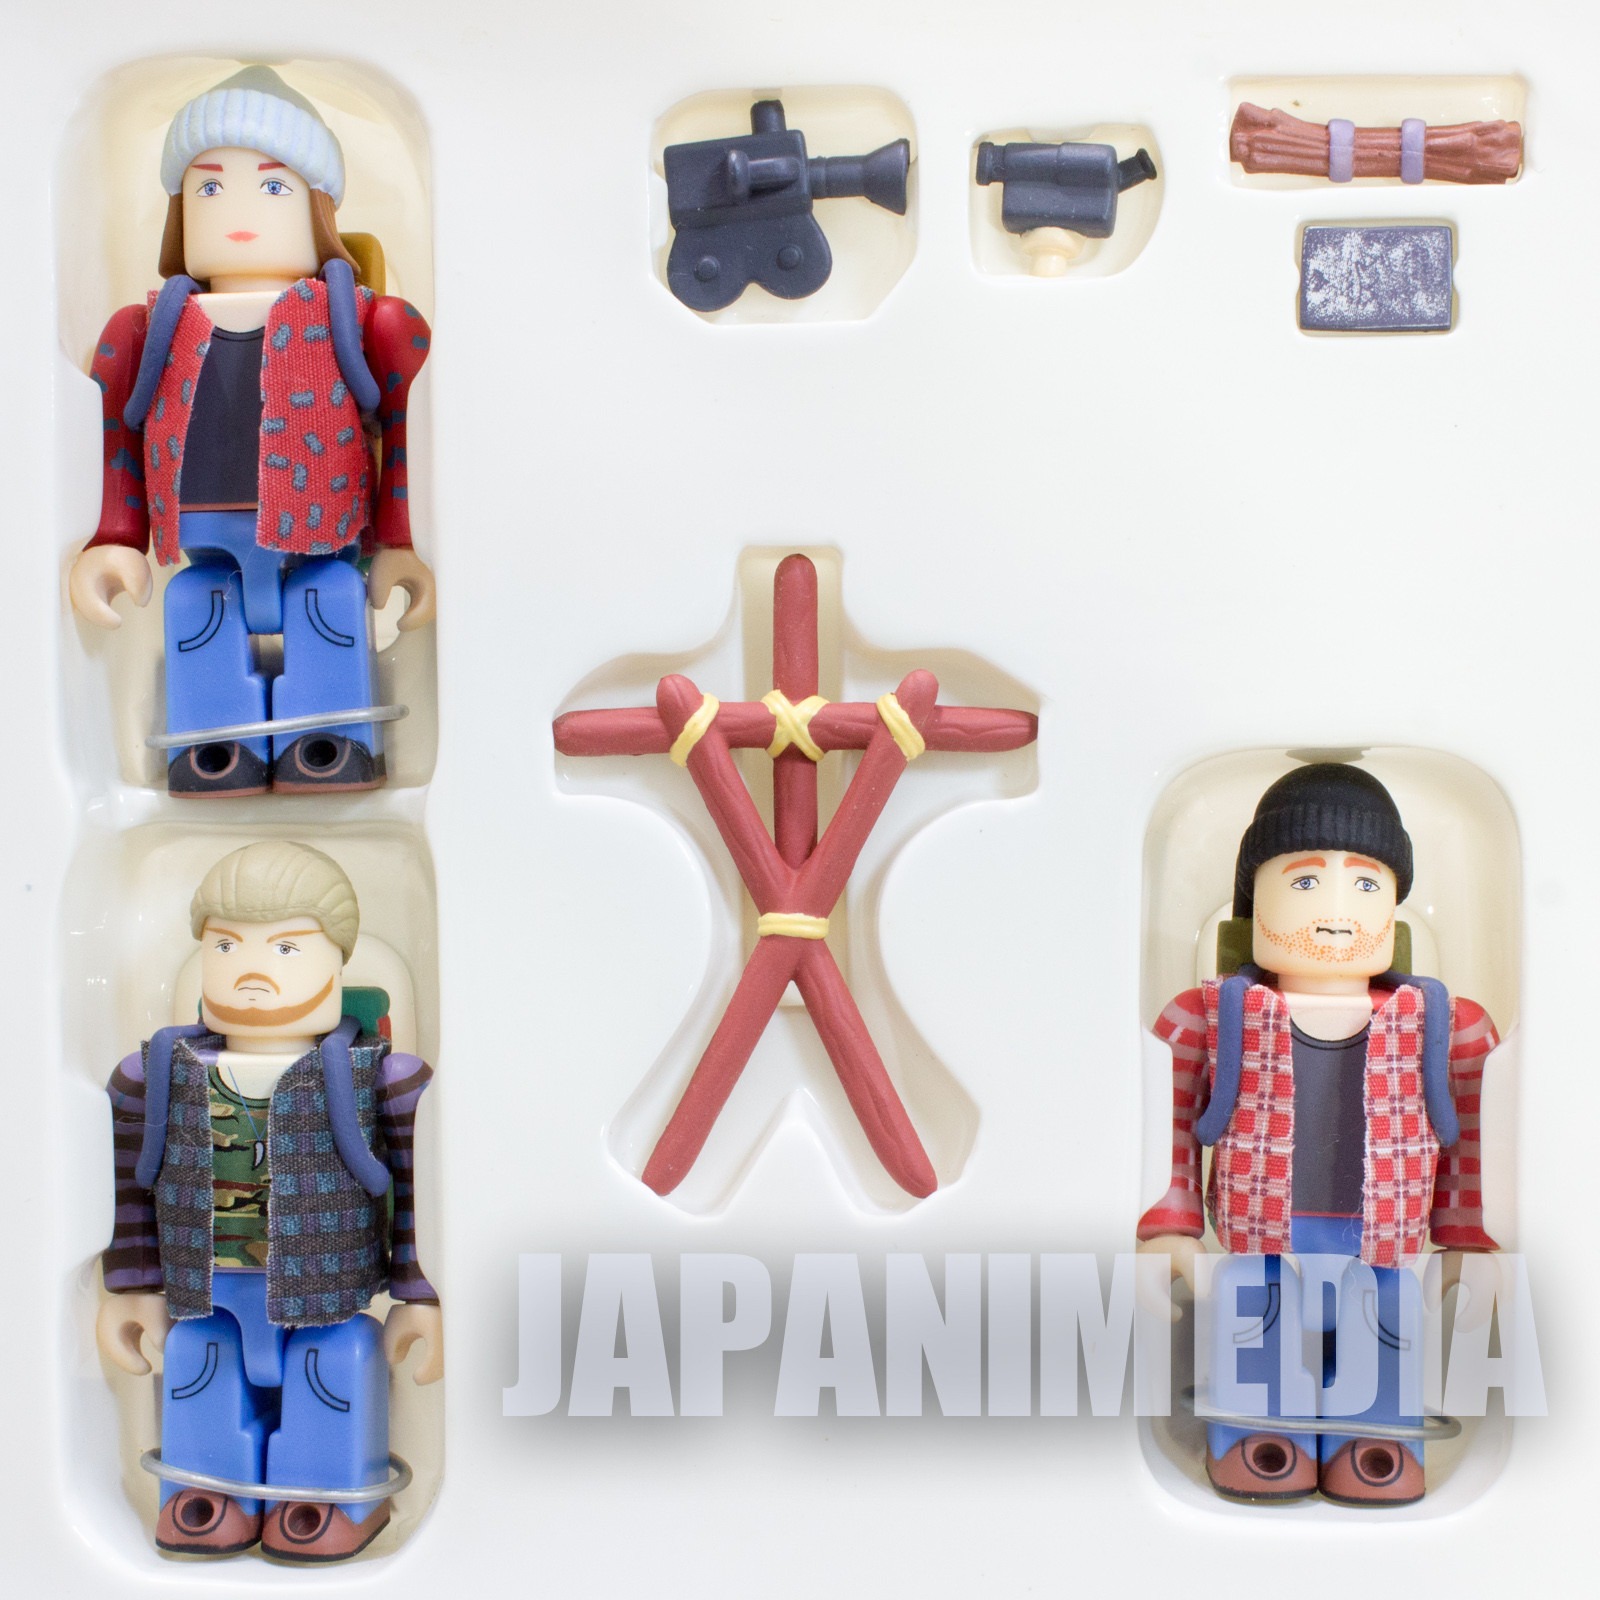 The Blair Witch Project Kubrick figure set Medicom Toy JAPAN